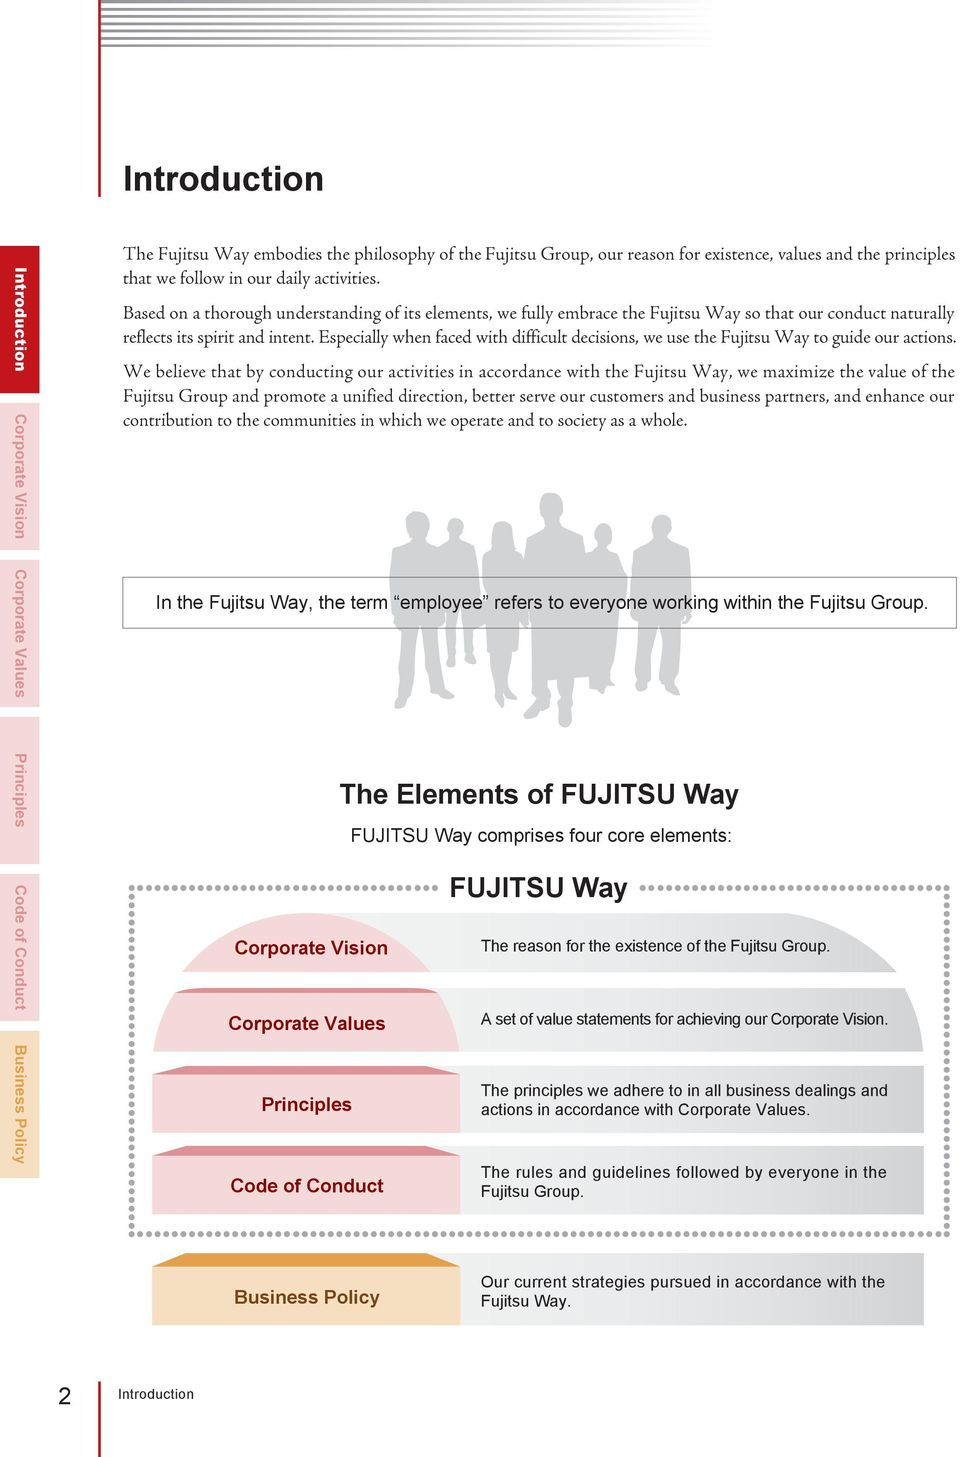 Especially when faced with difficult decisions, we use the Fujitsu Way to guide our actions.